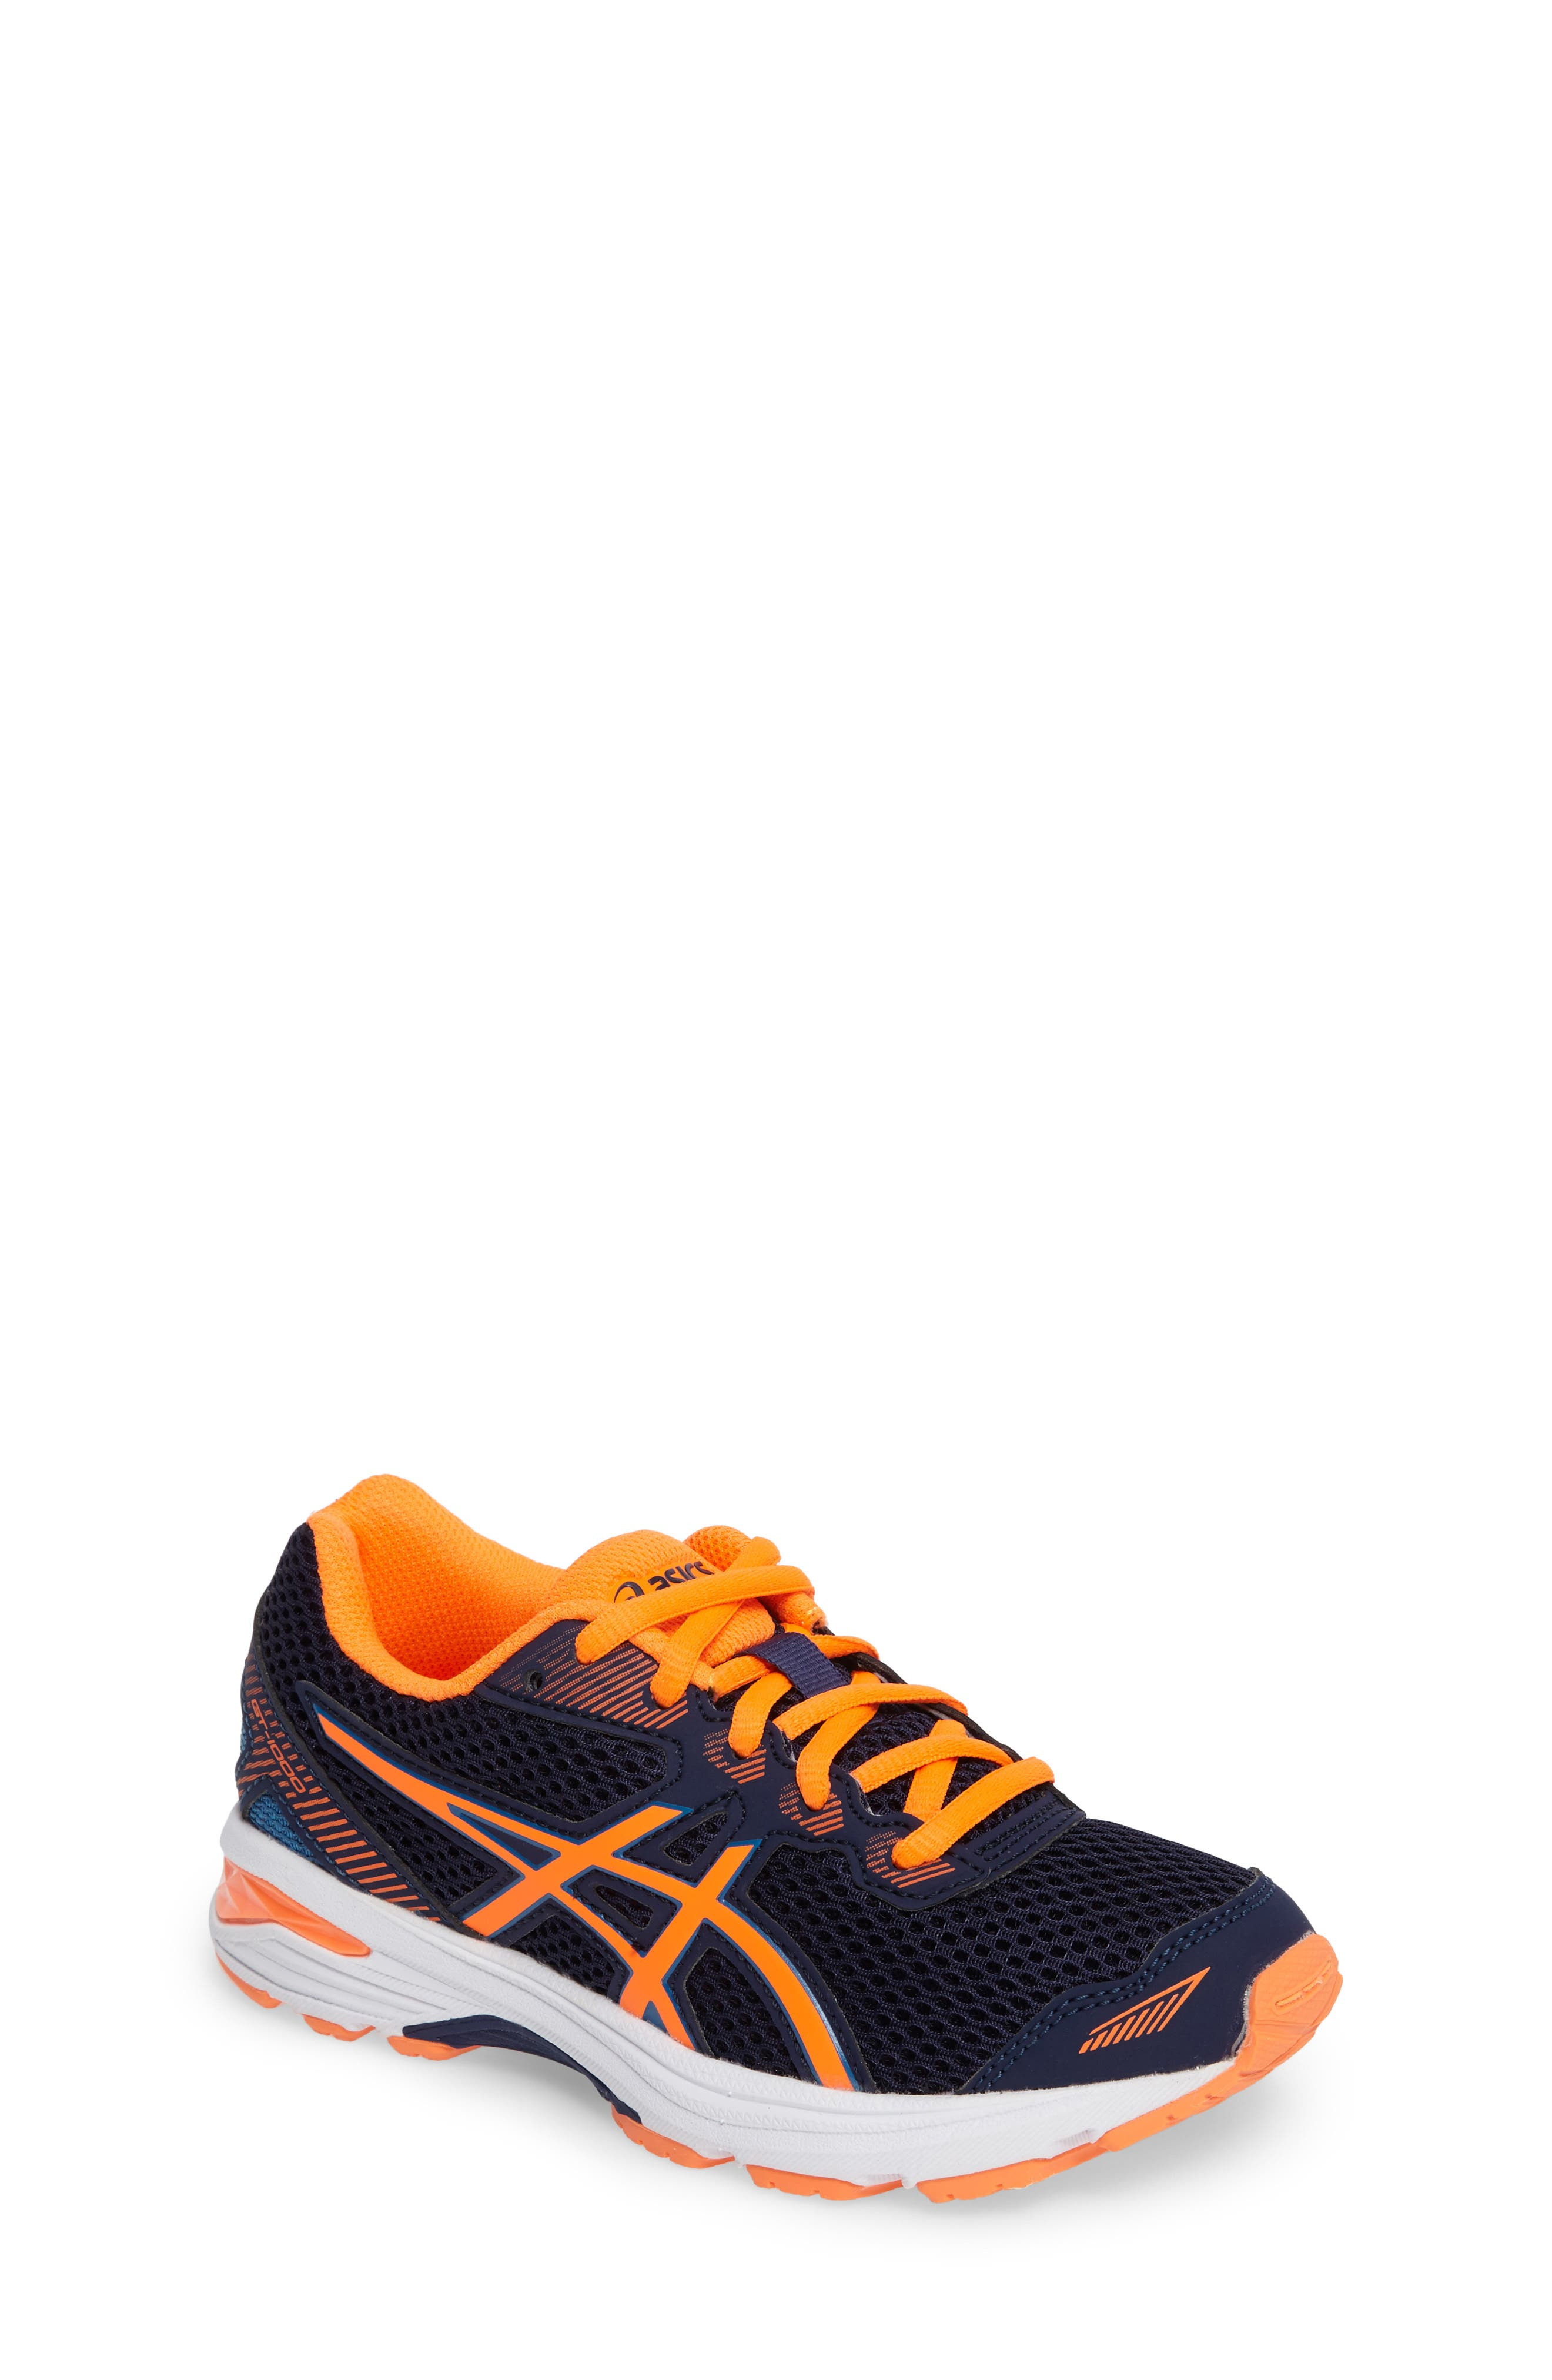 ASICS<SUP>®</SUP> GT-1000<sup>™</sup> 5 GS Running Shoe